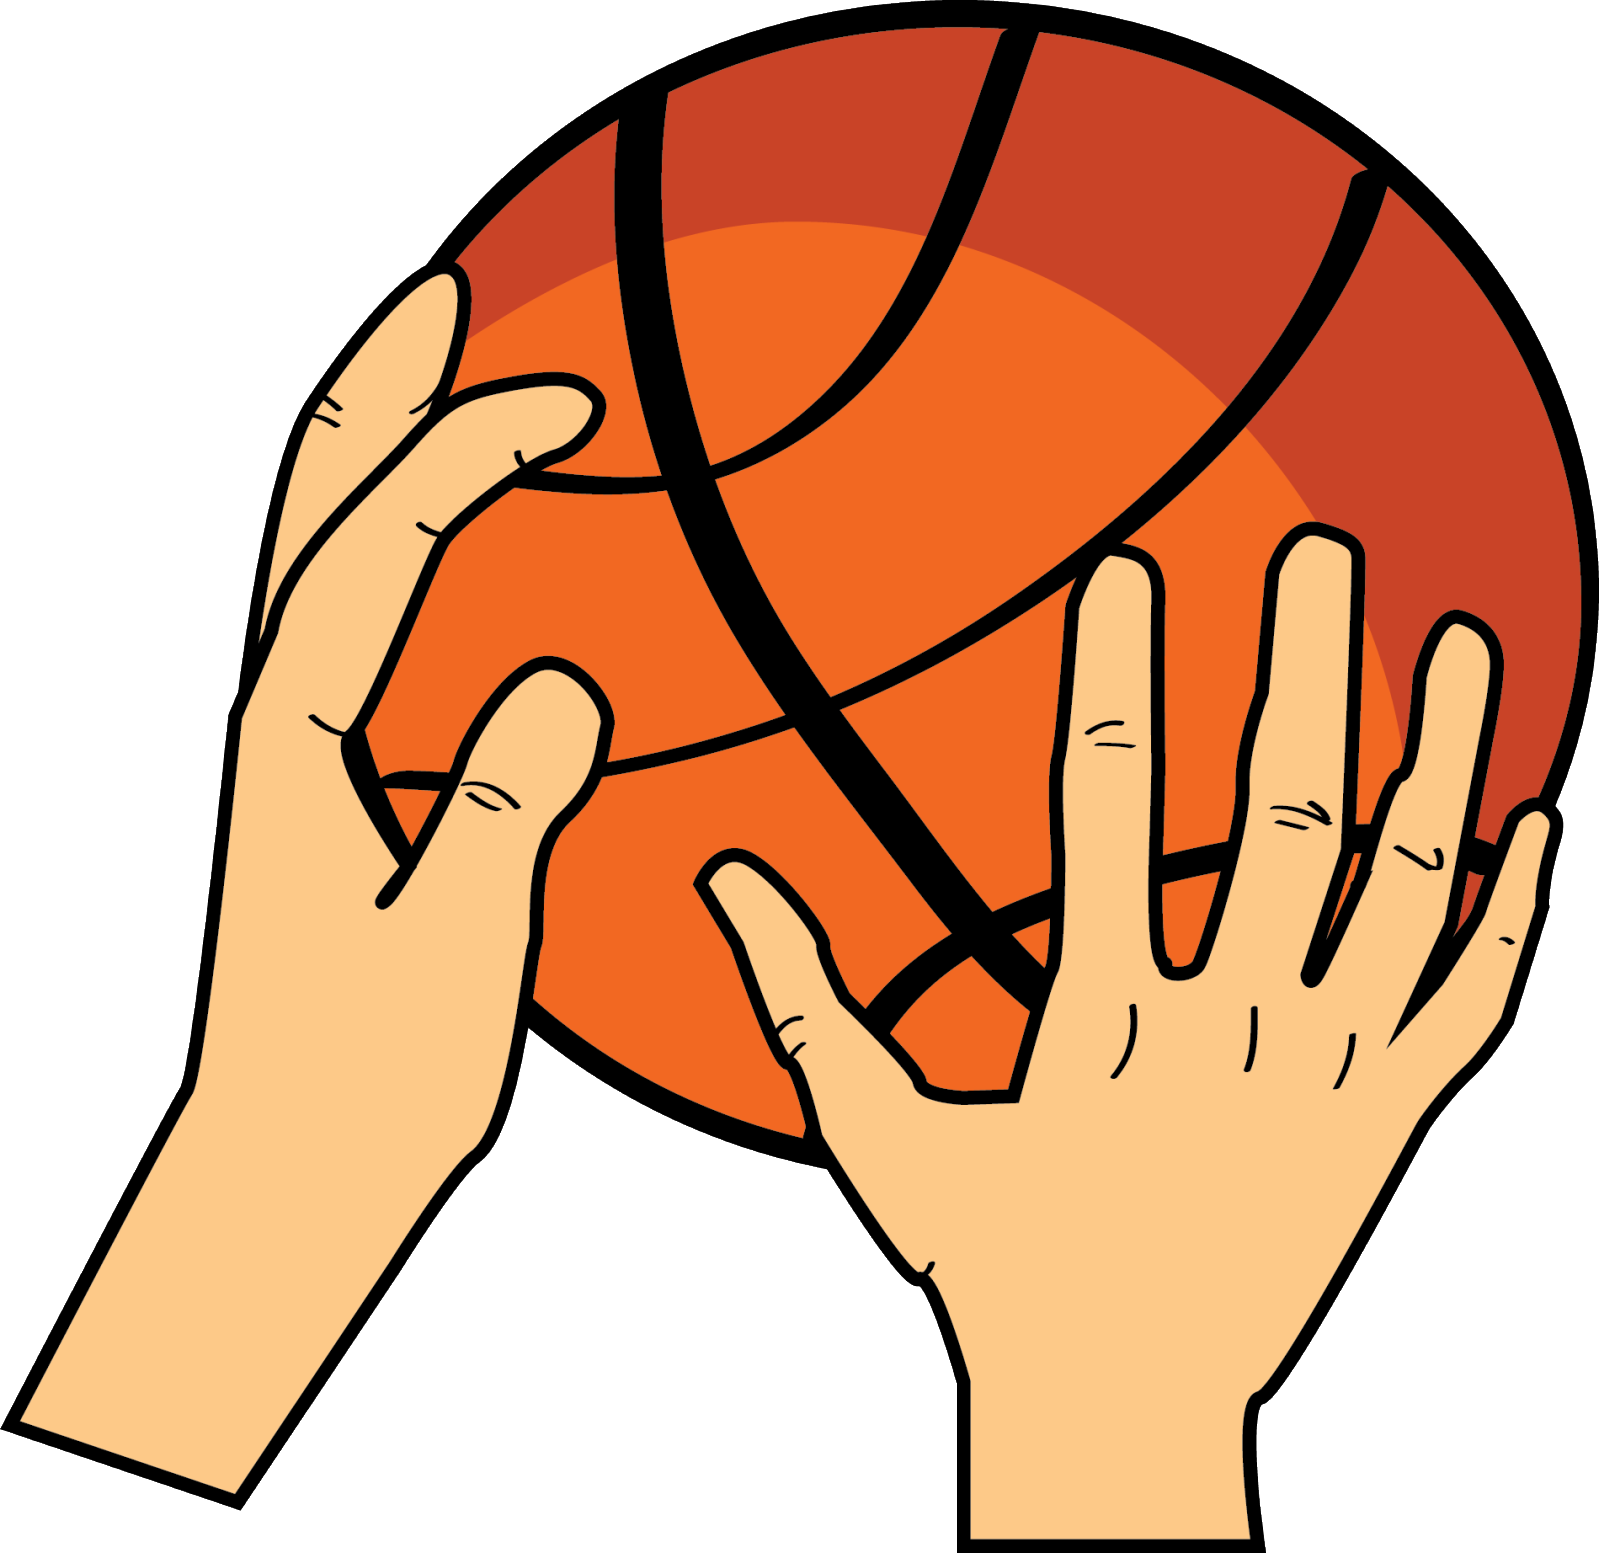 Basketball in hand clipart image library stock Hand Basketball Clip Art   Fashion Ideas image library stock